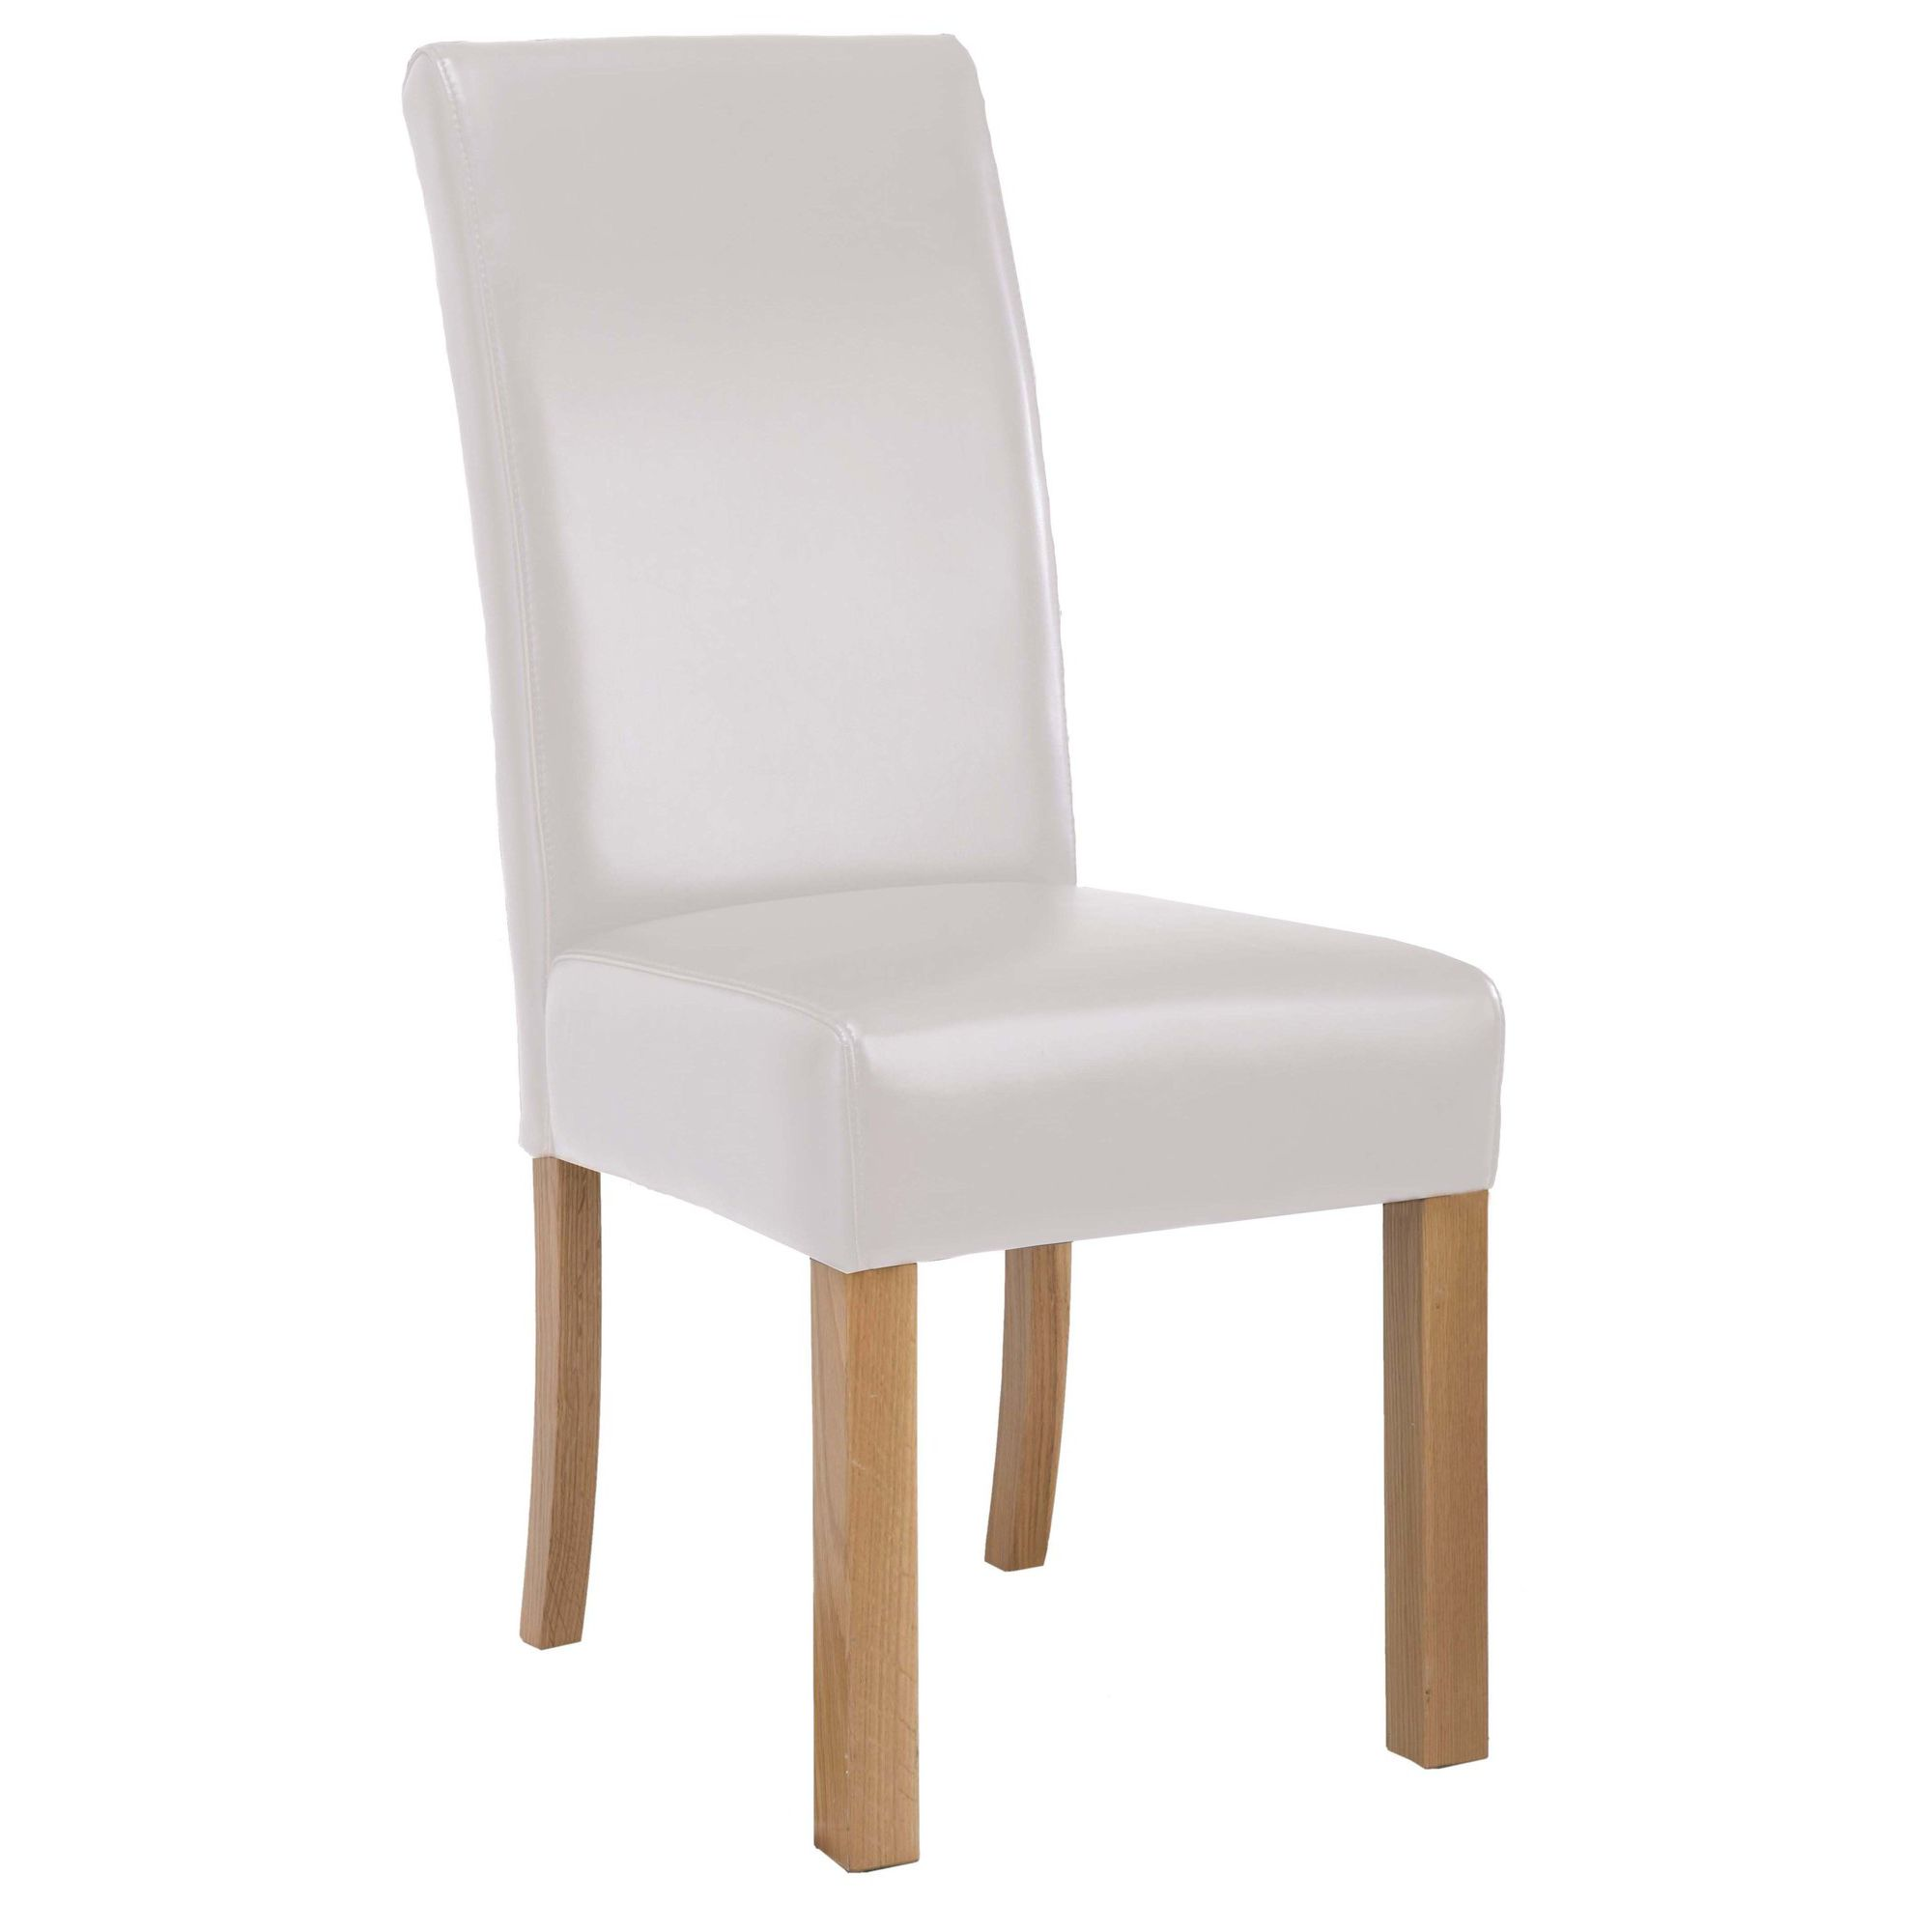 Oakinsen Concord Leather Dining Chair in Cream (Set of 2)